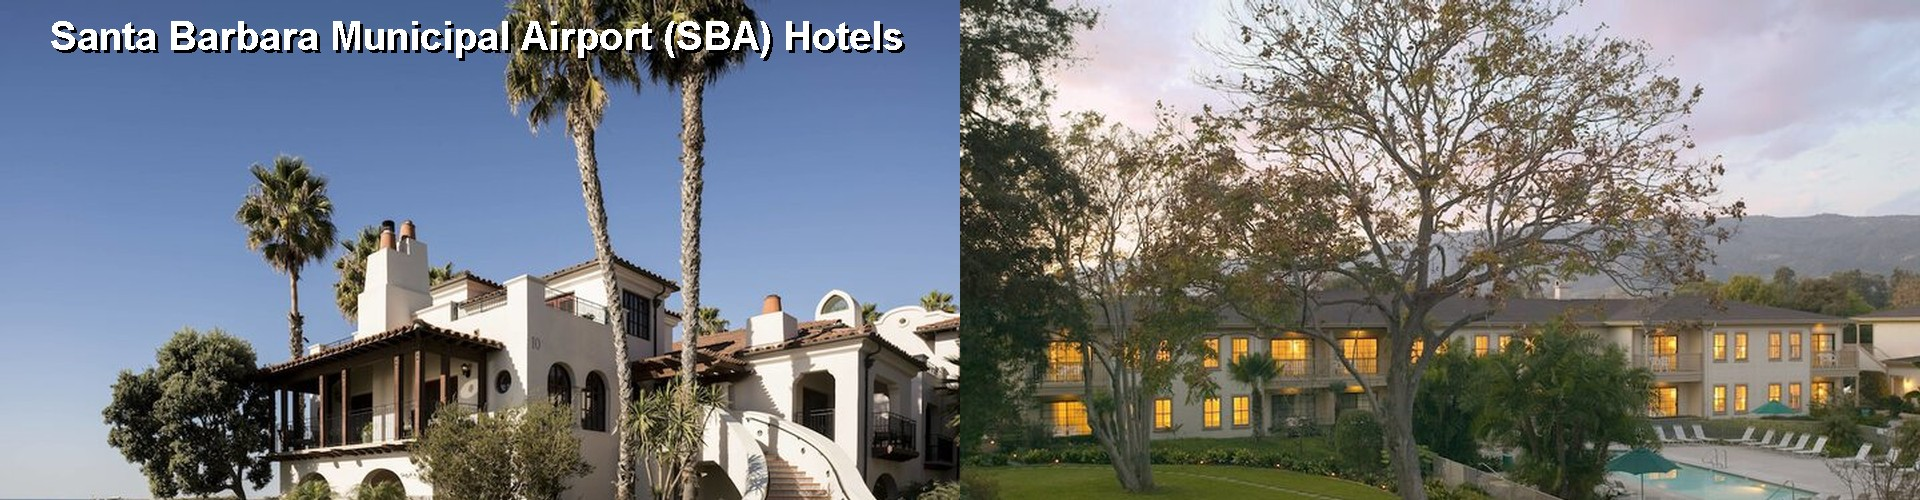 5 Best Hotels near Santa Barbara Municipal Airport (SBA)